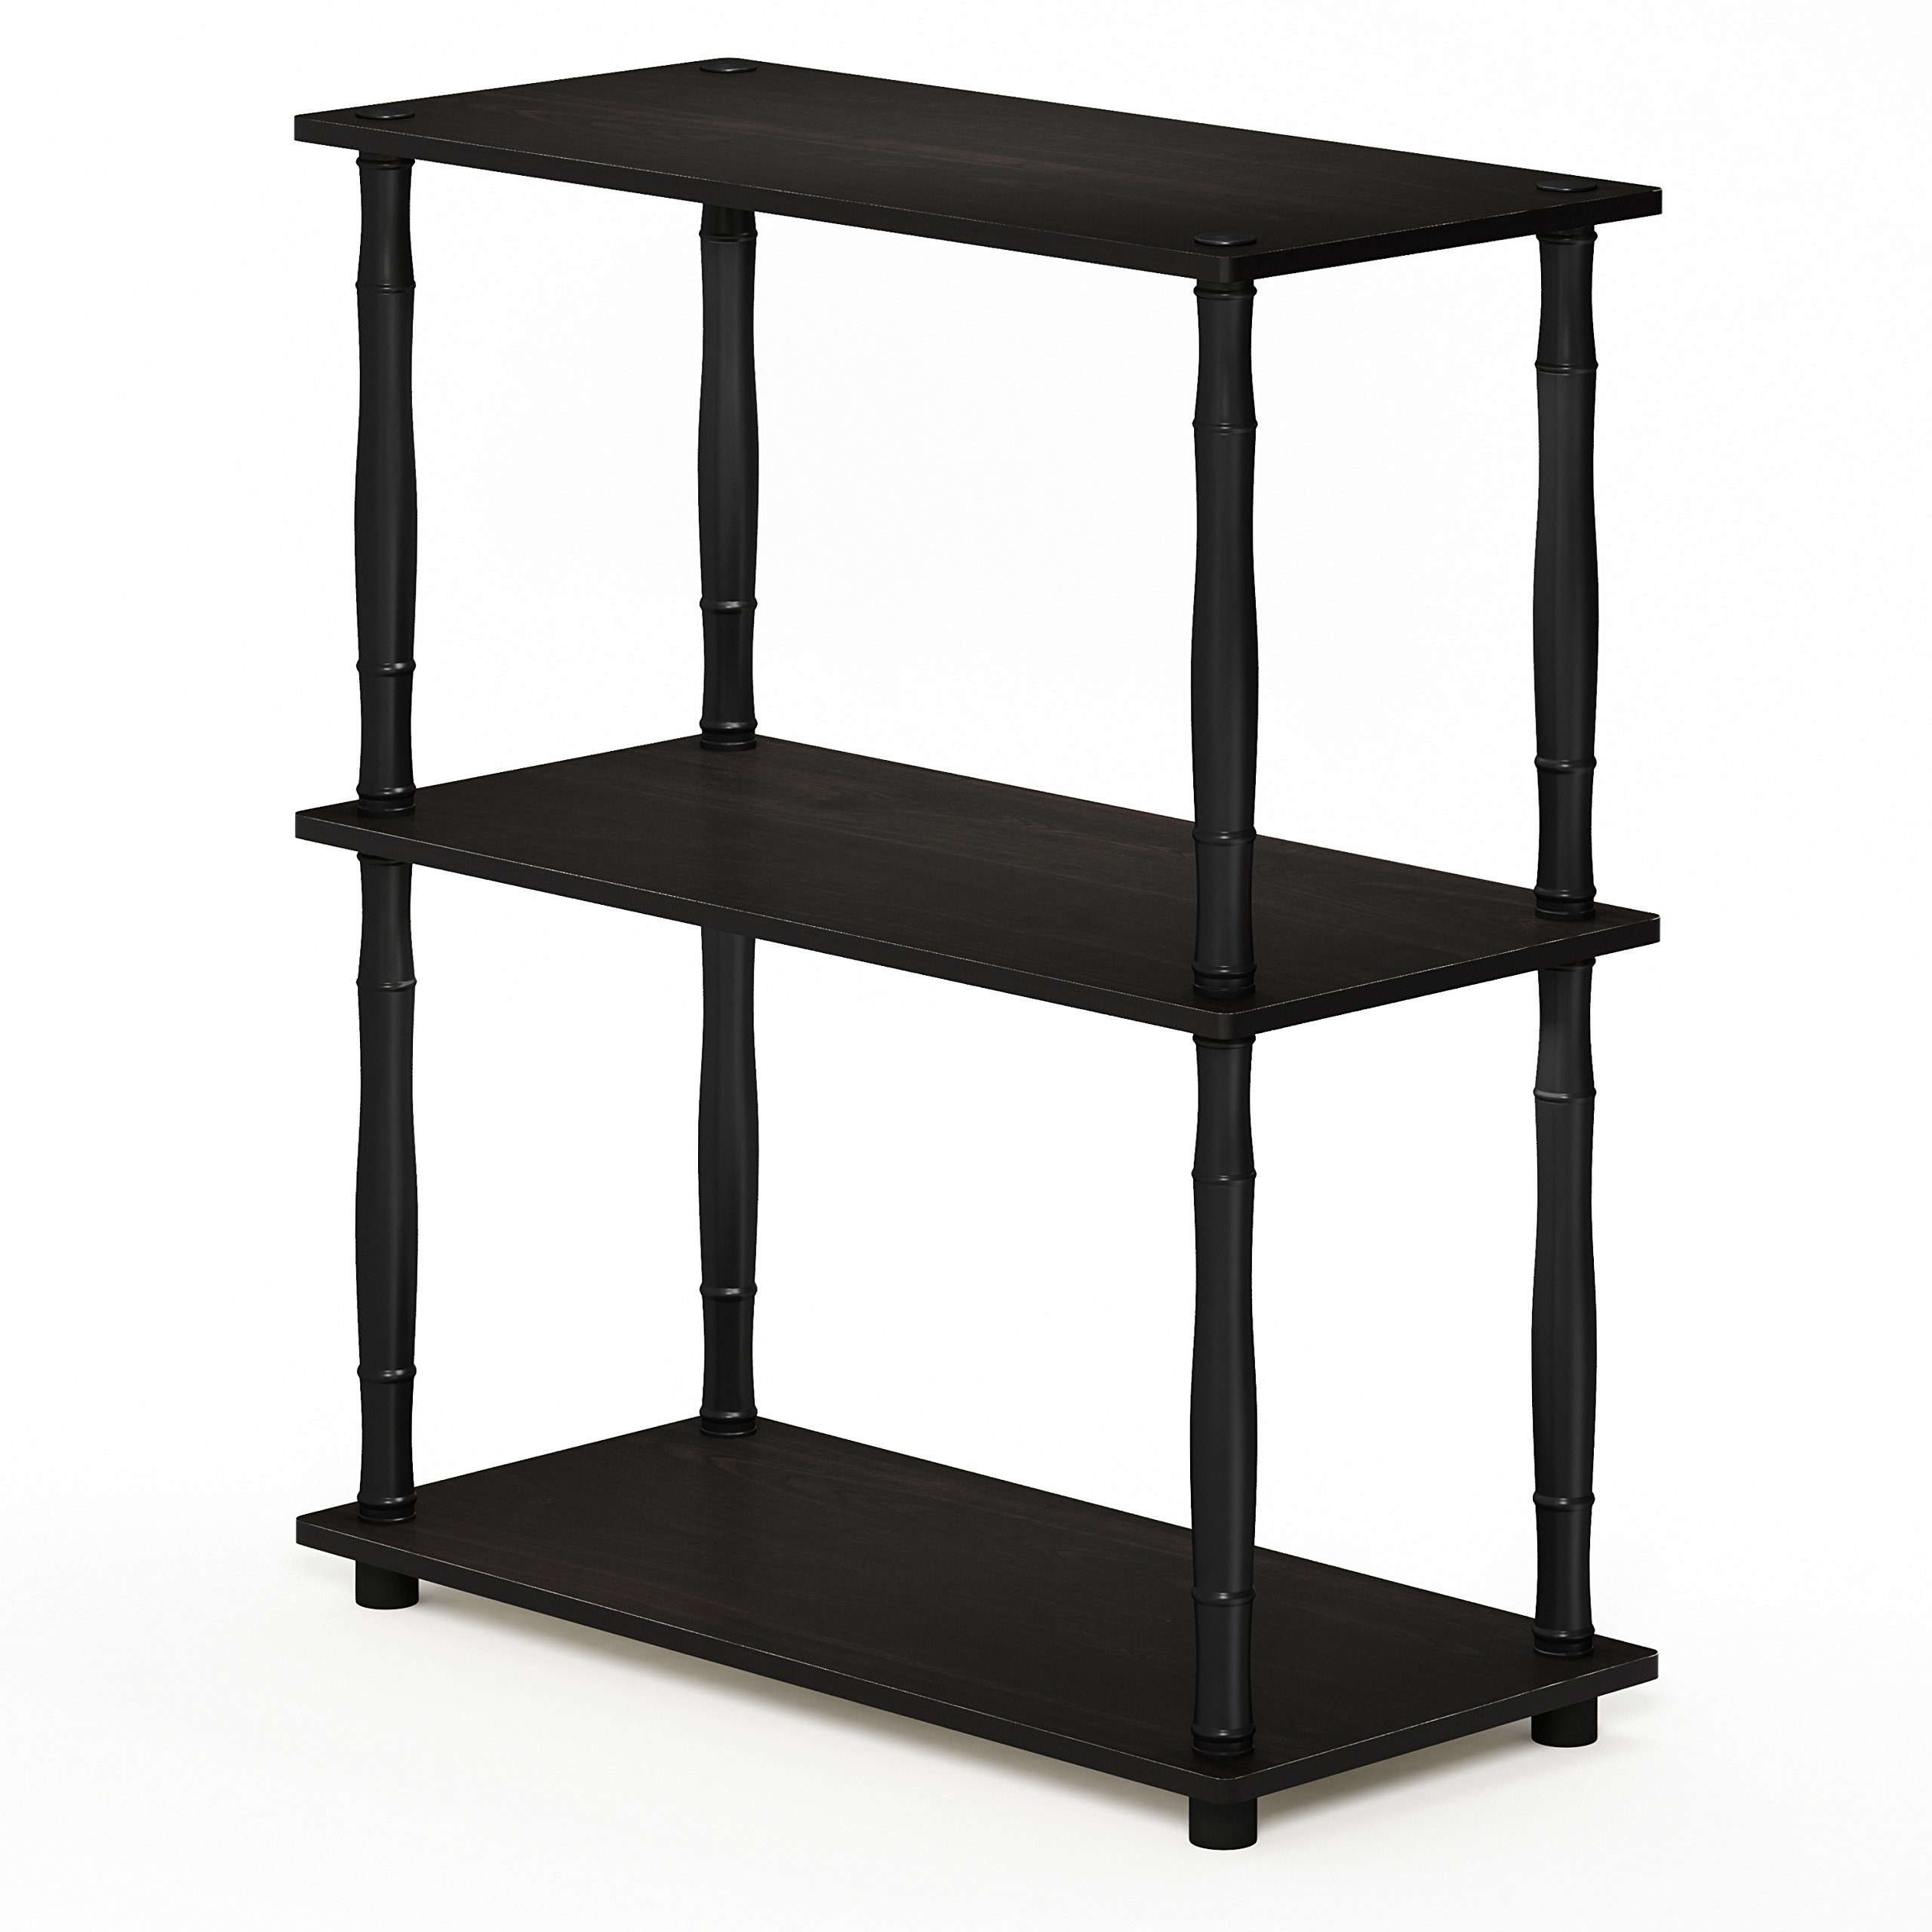 Furinno 18029EX/BK Turn-N-Tube Compact Shelving Rack, 3-Tier, Espresso/Black Classic Tube